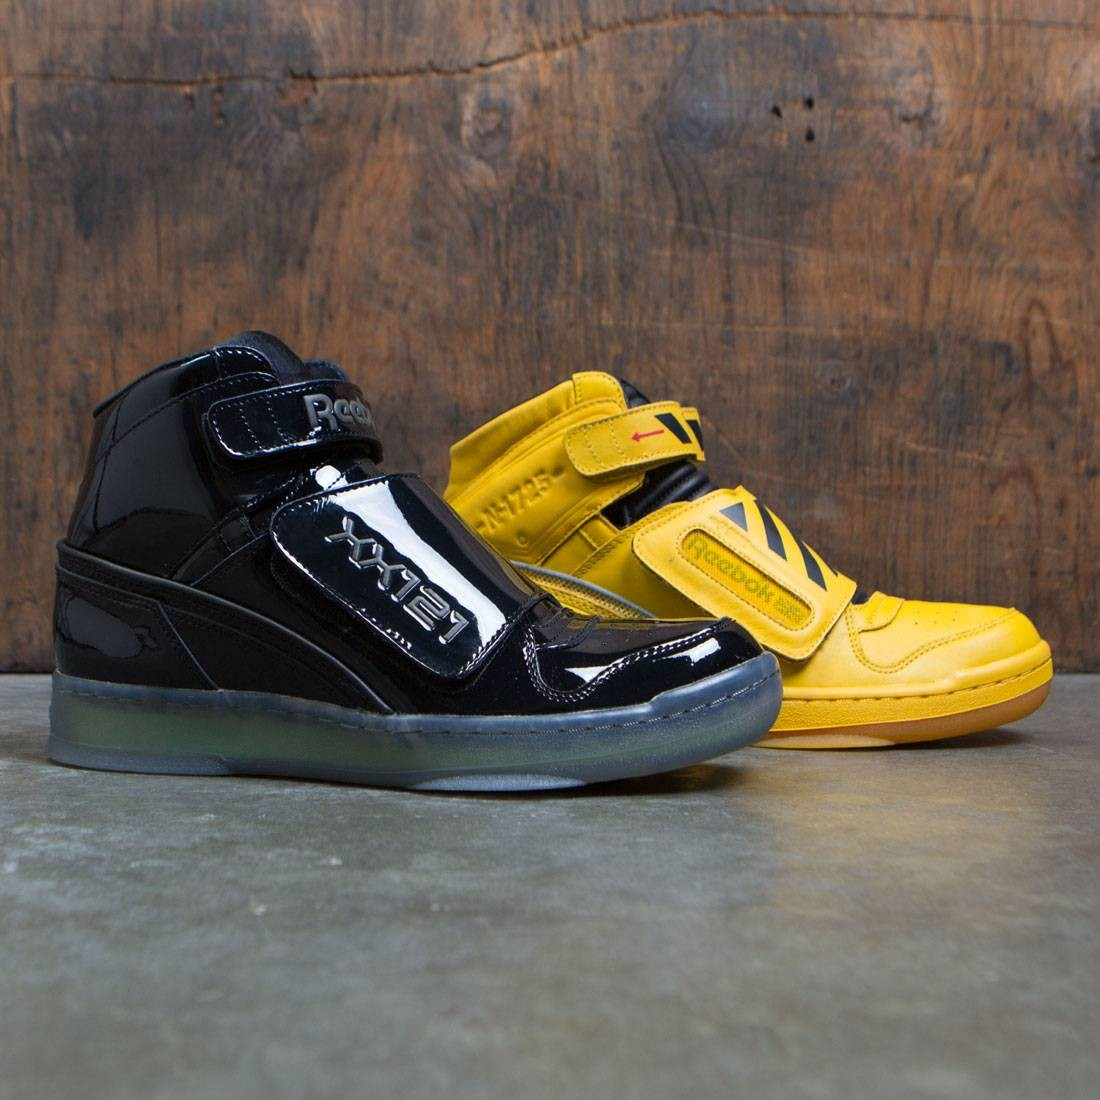 Reebok Men Alien Stomper Mid PL - Final Battle Pack yellow retro black gum c48a8a32c